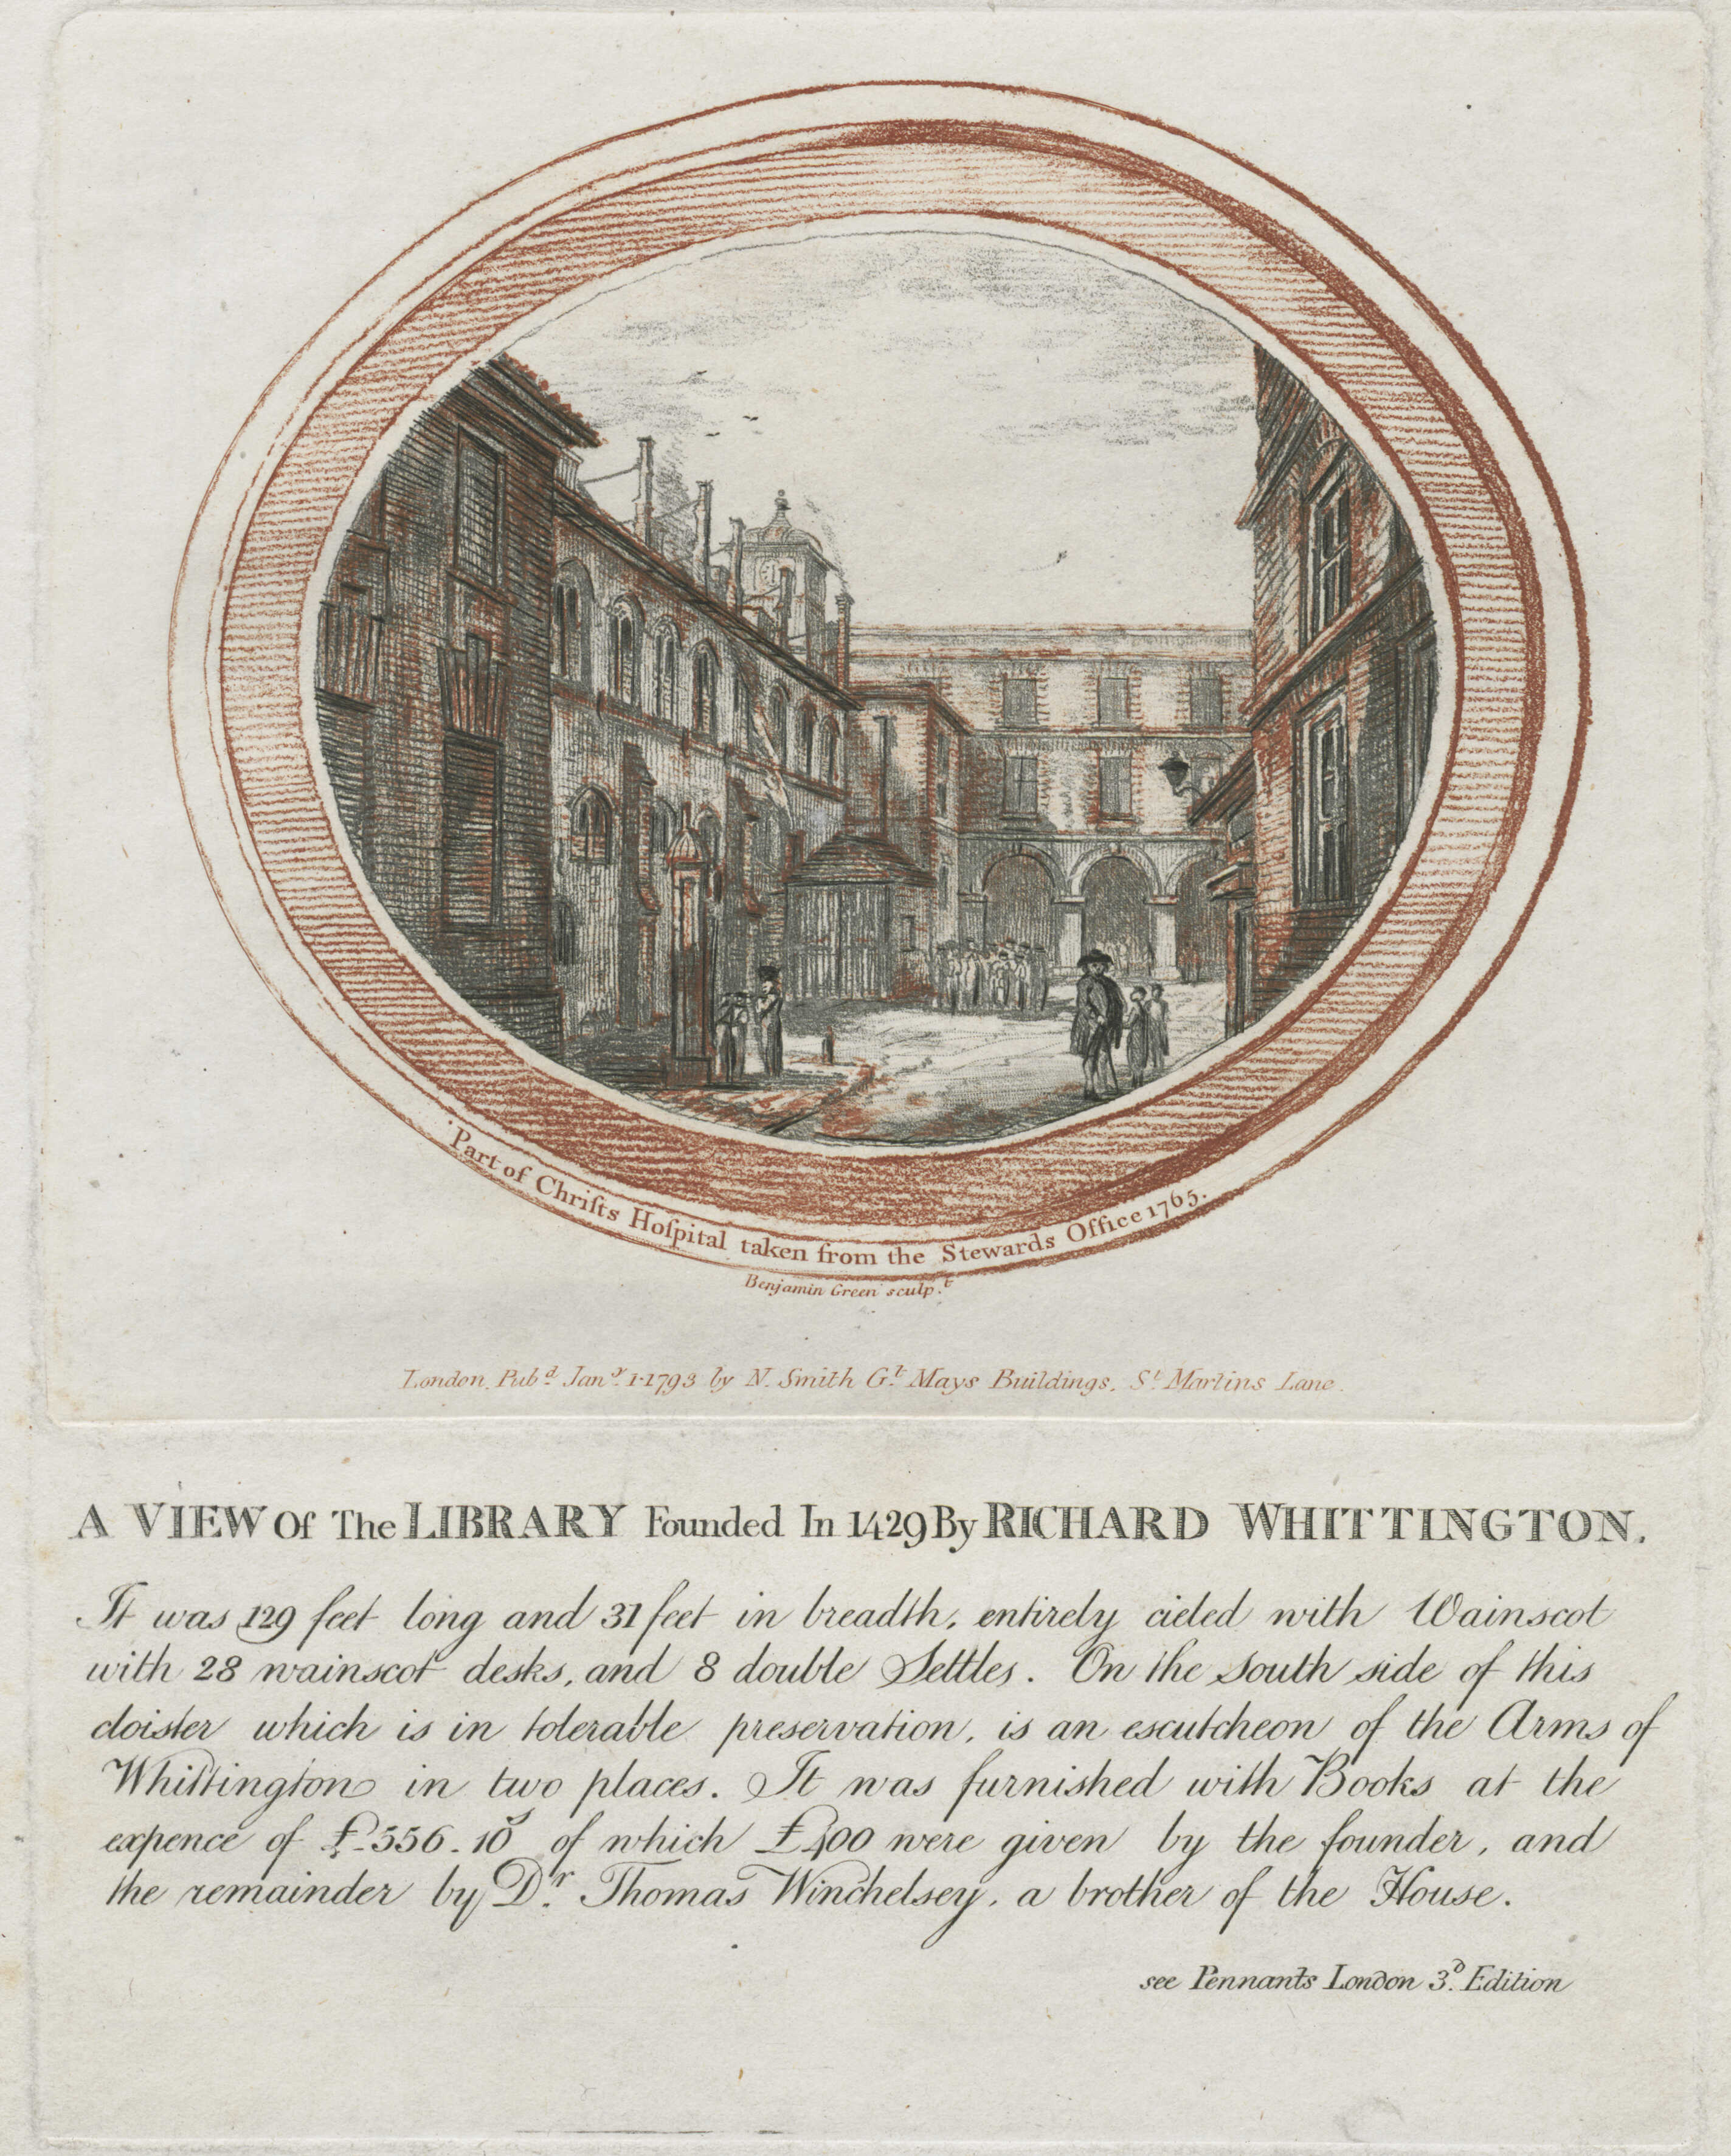 37-part-of-christs-hospital-taken-from-the-stewards-office-1765-richard-whittingtons-library